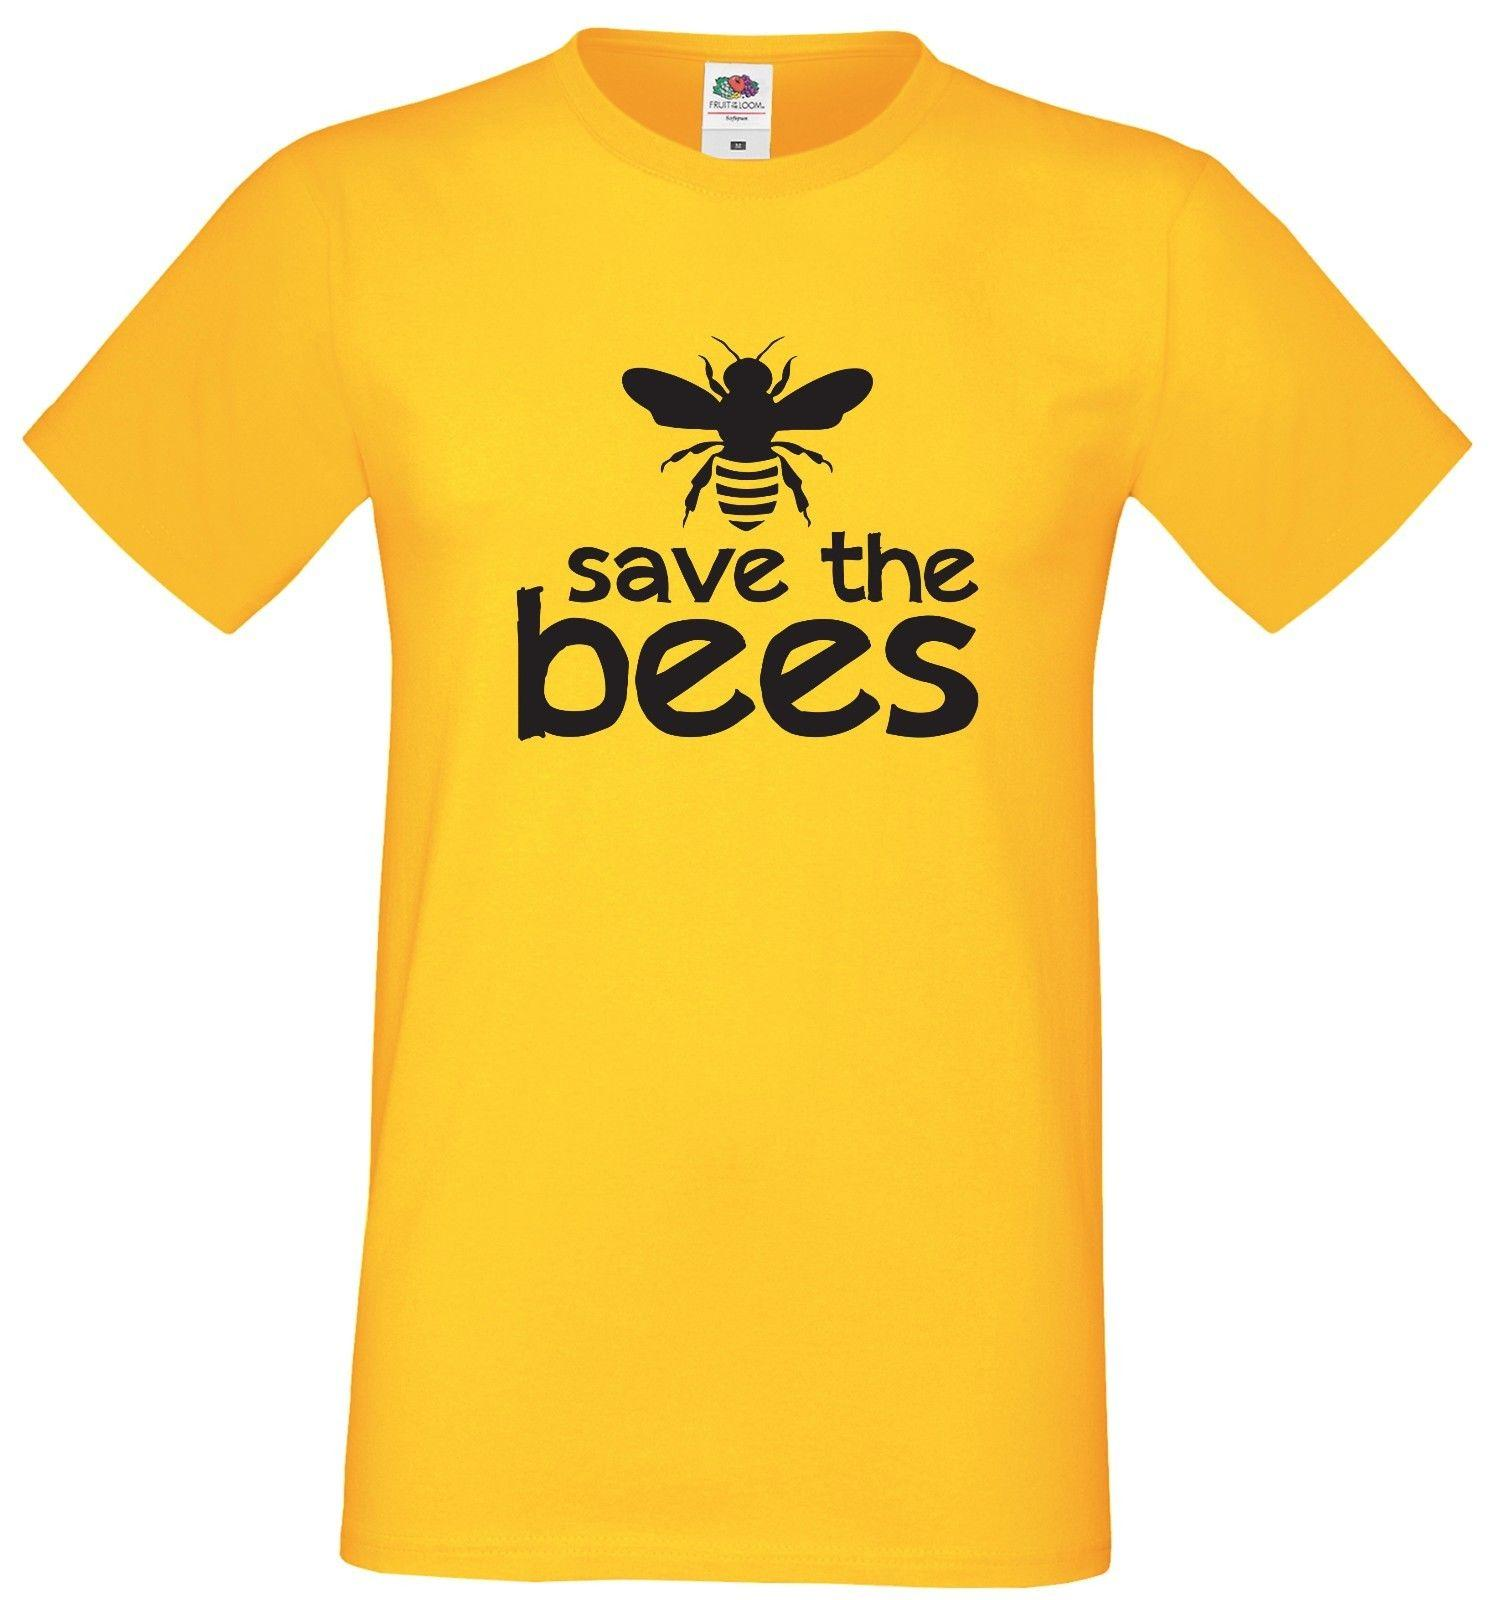 ab50738a27c SAVE THE BEES T SHIRT YELLOW COTTON NATURE MENS LADIES KIDS SIZES TO 3XL  Online Shopping Tee Shirts Crazy T Shirts For Men From Pickapair